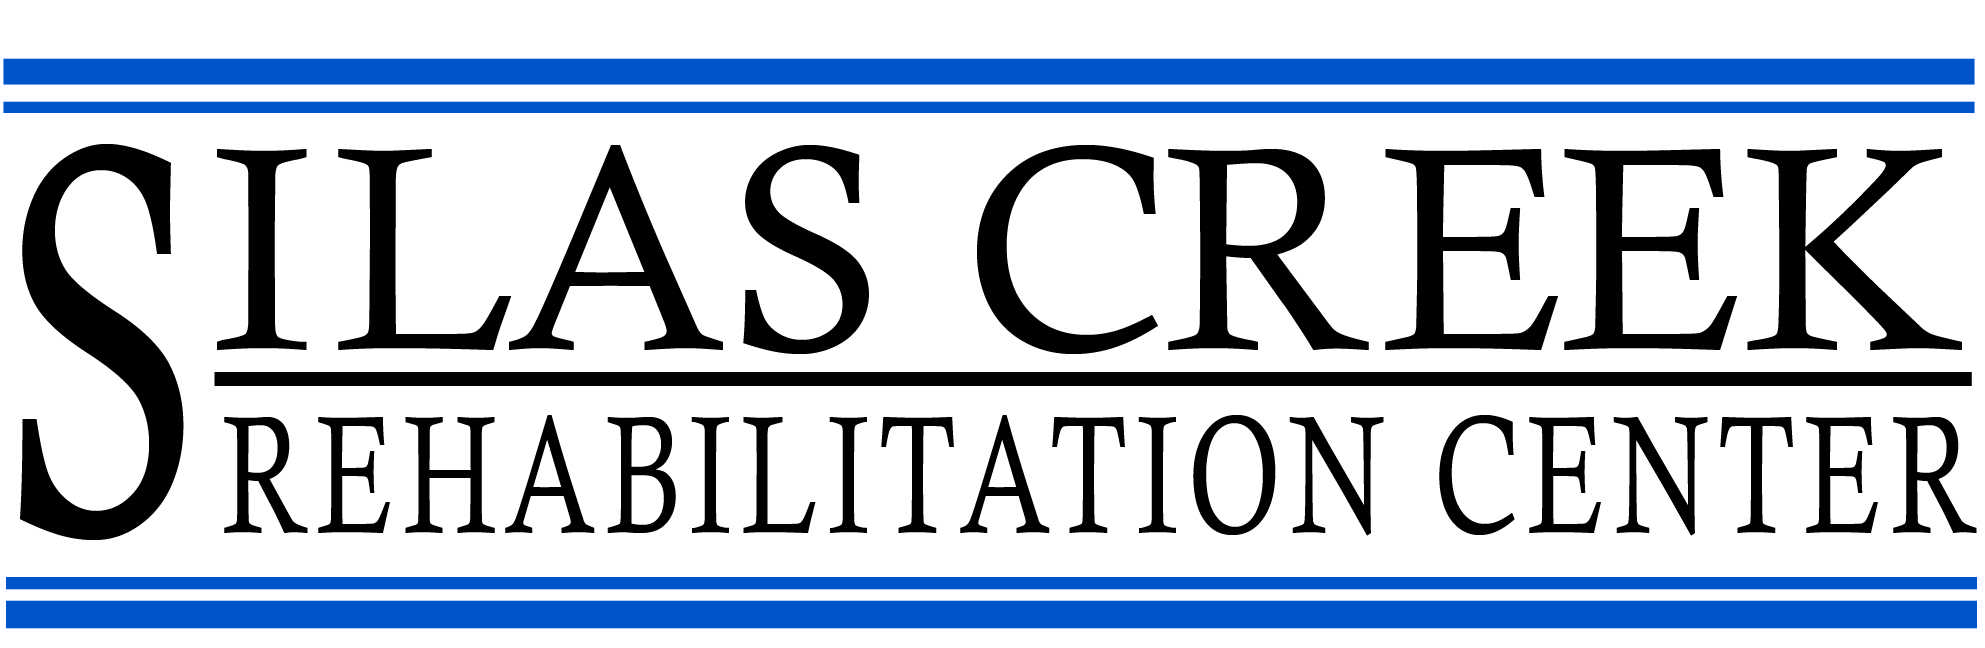 Silas Creek Rehabilitation Center logo